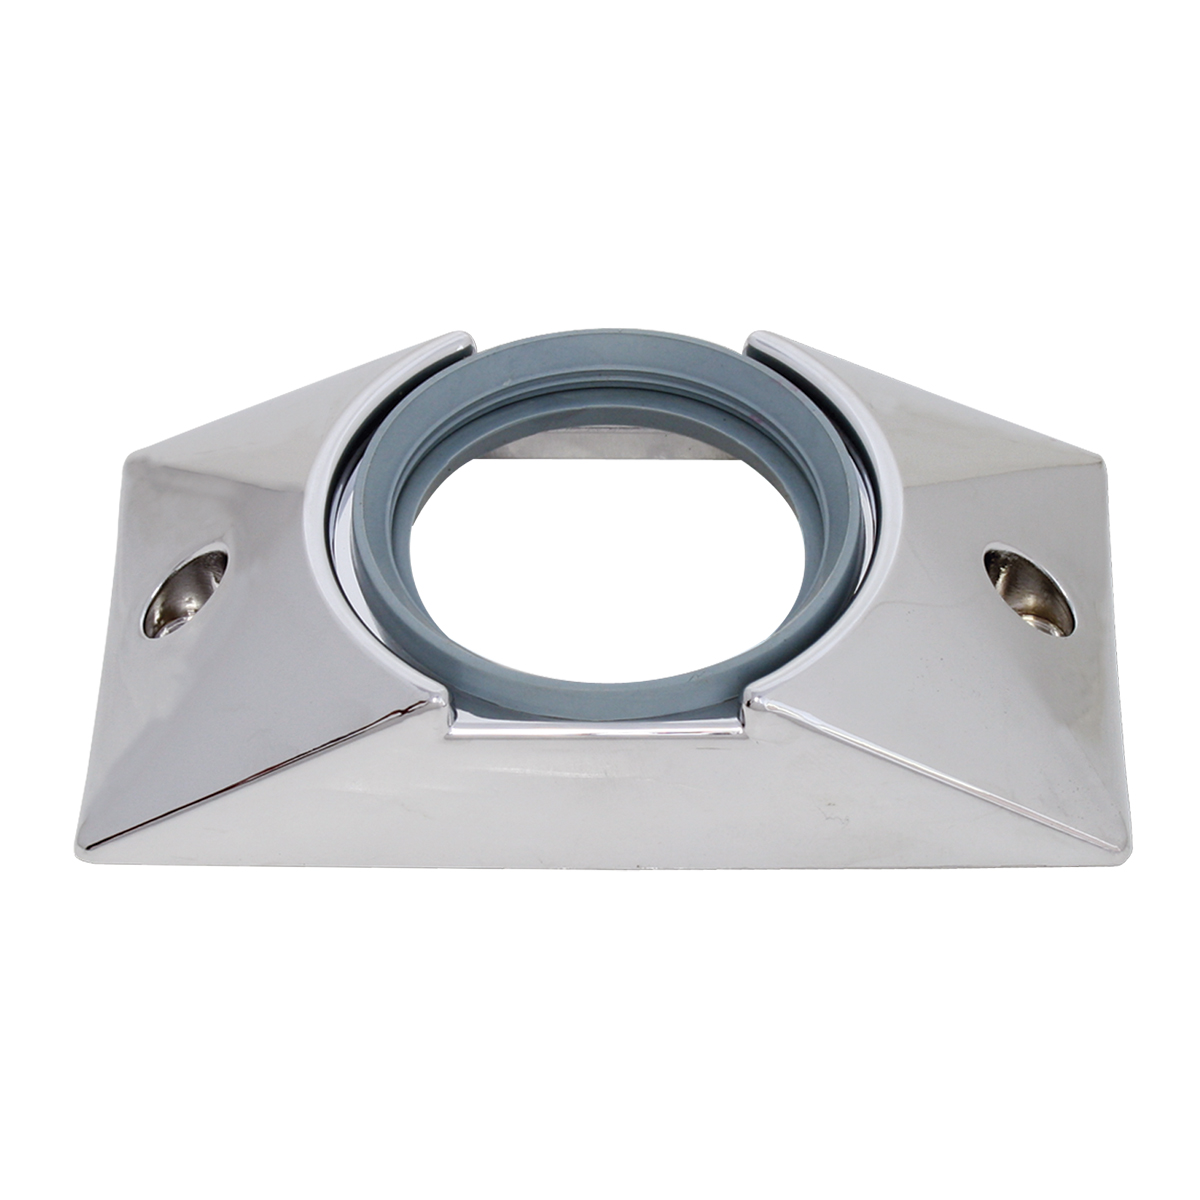 "82619 Chrome Plastic Mounting Bracket with Grommet for 2"" Round Light"